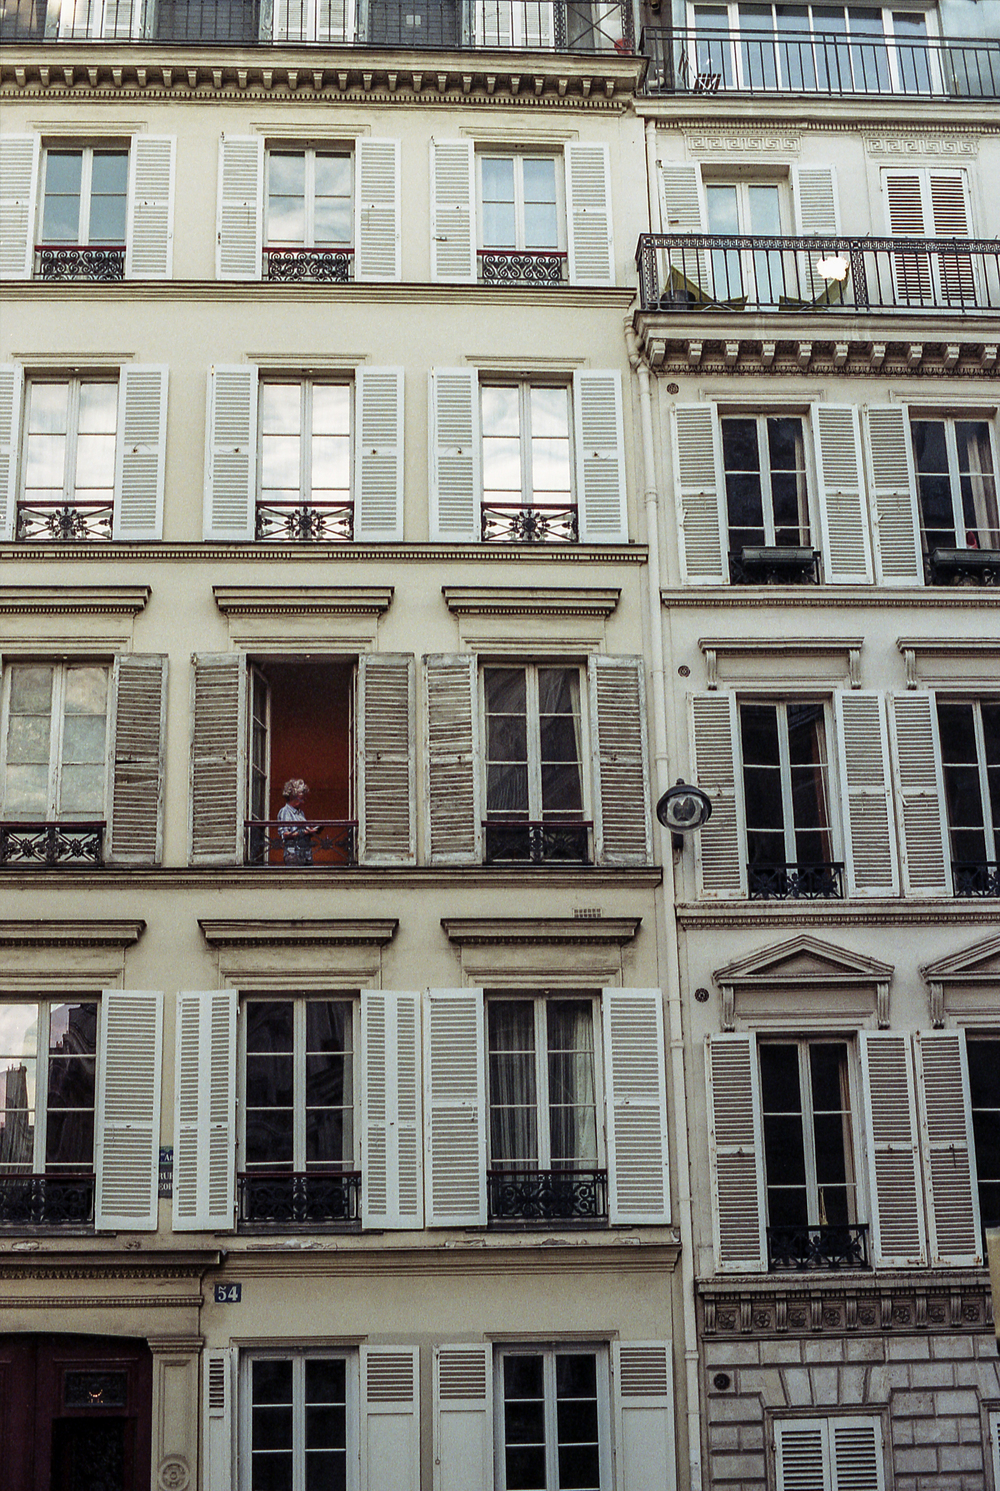 Paris, France 35mm